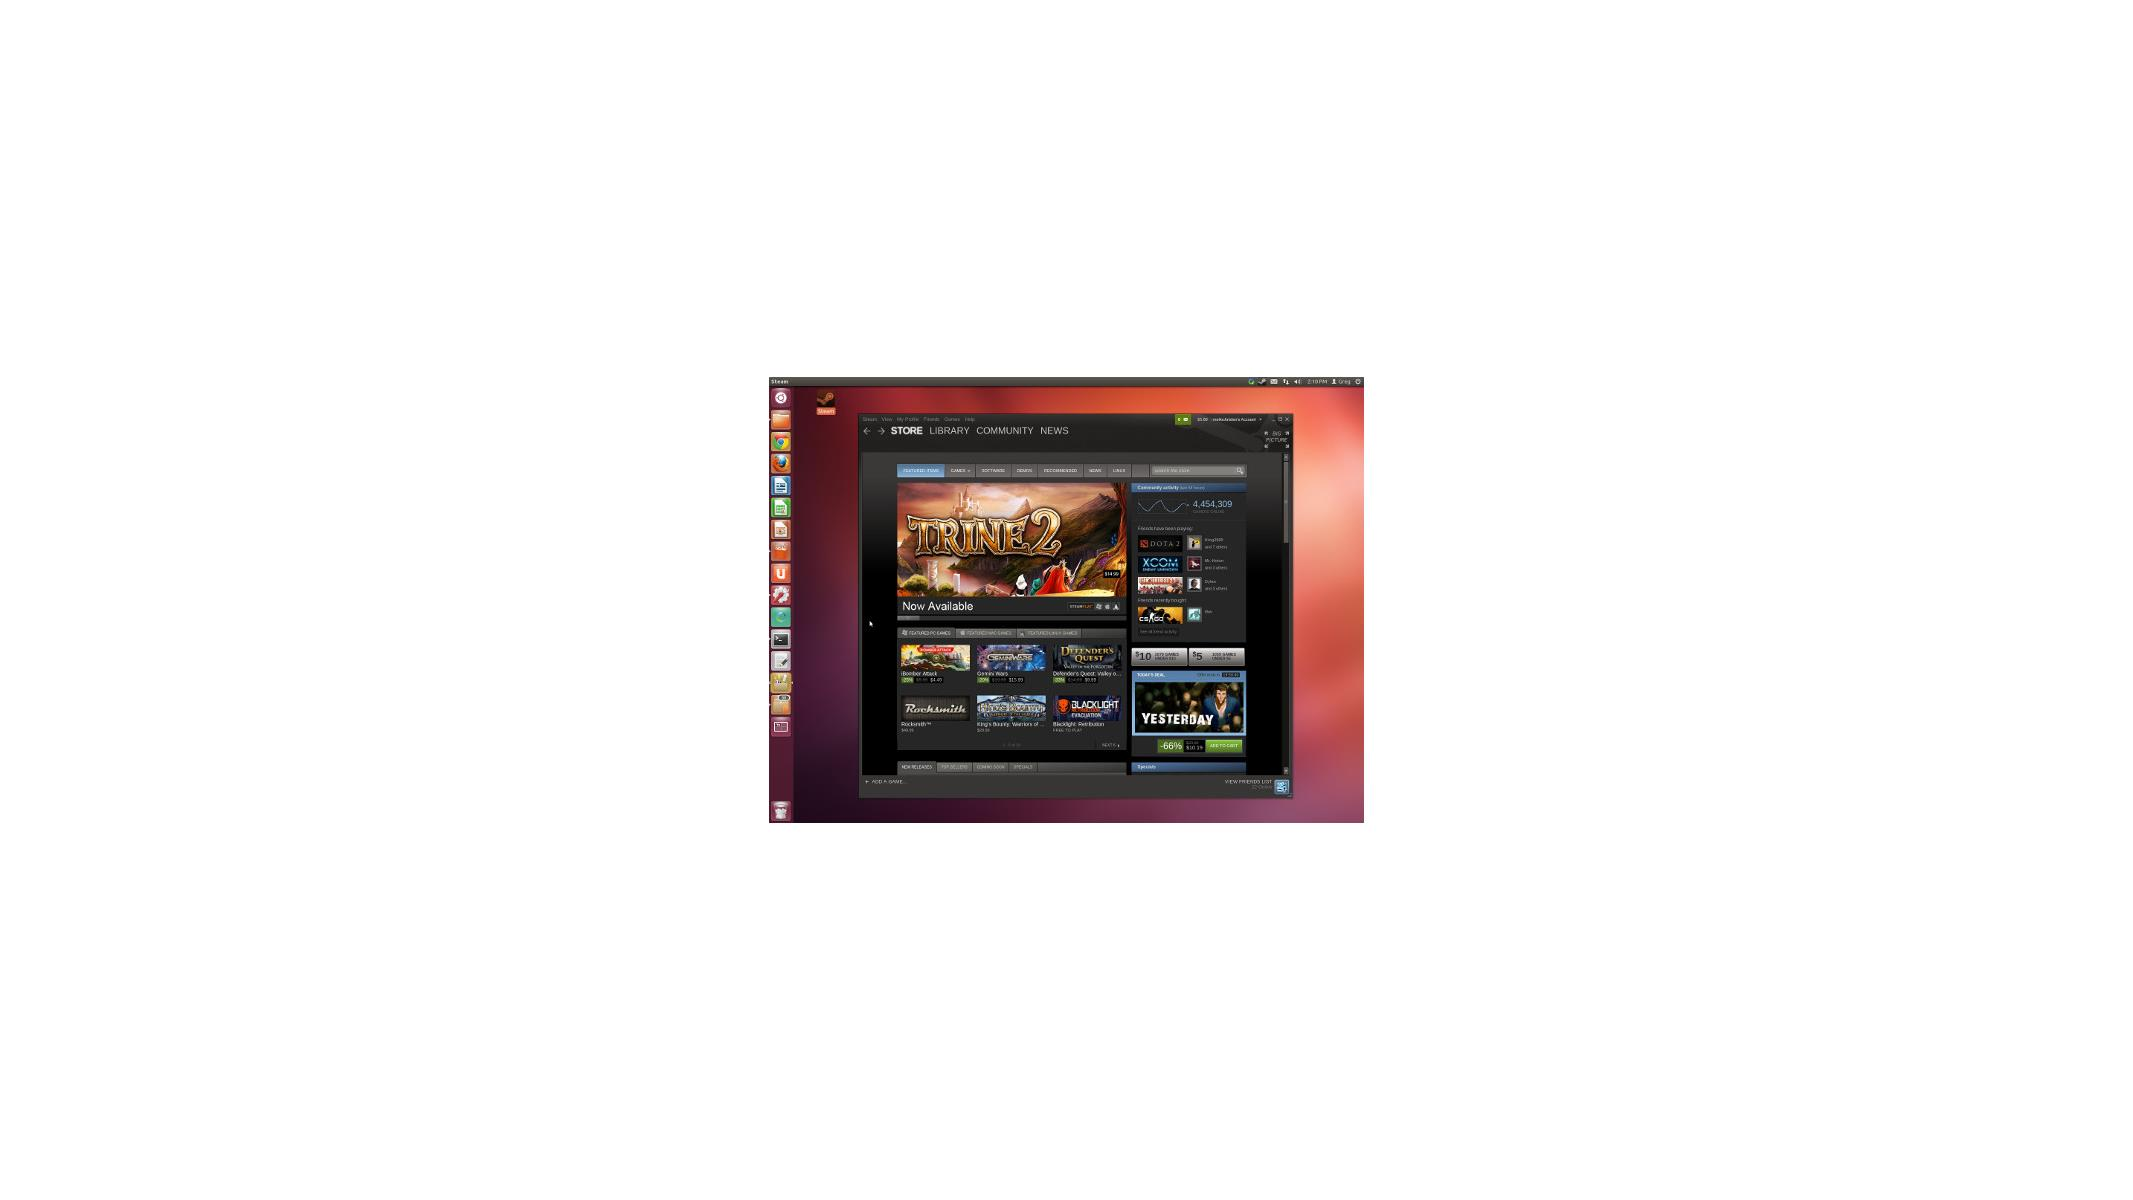 Official Steam Client For Ubuntu Linux Released | HotHardware